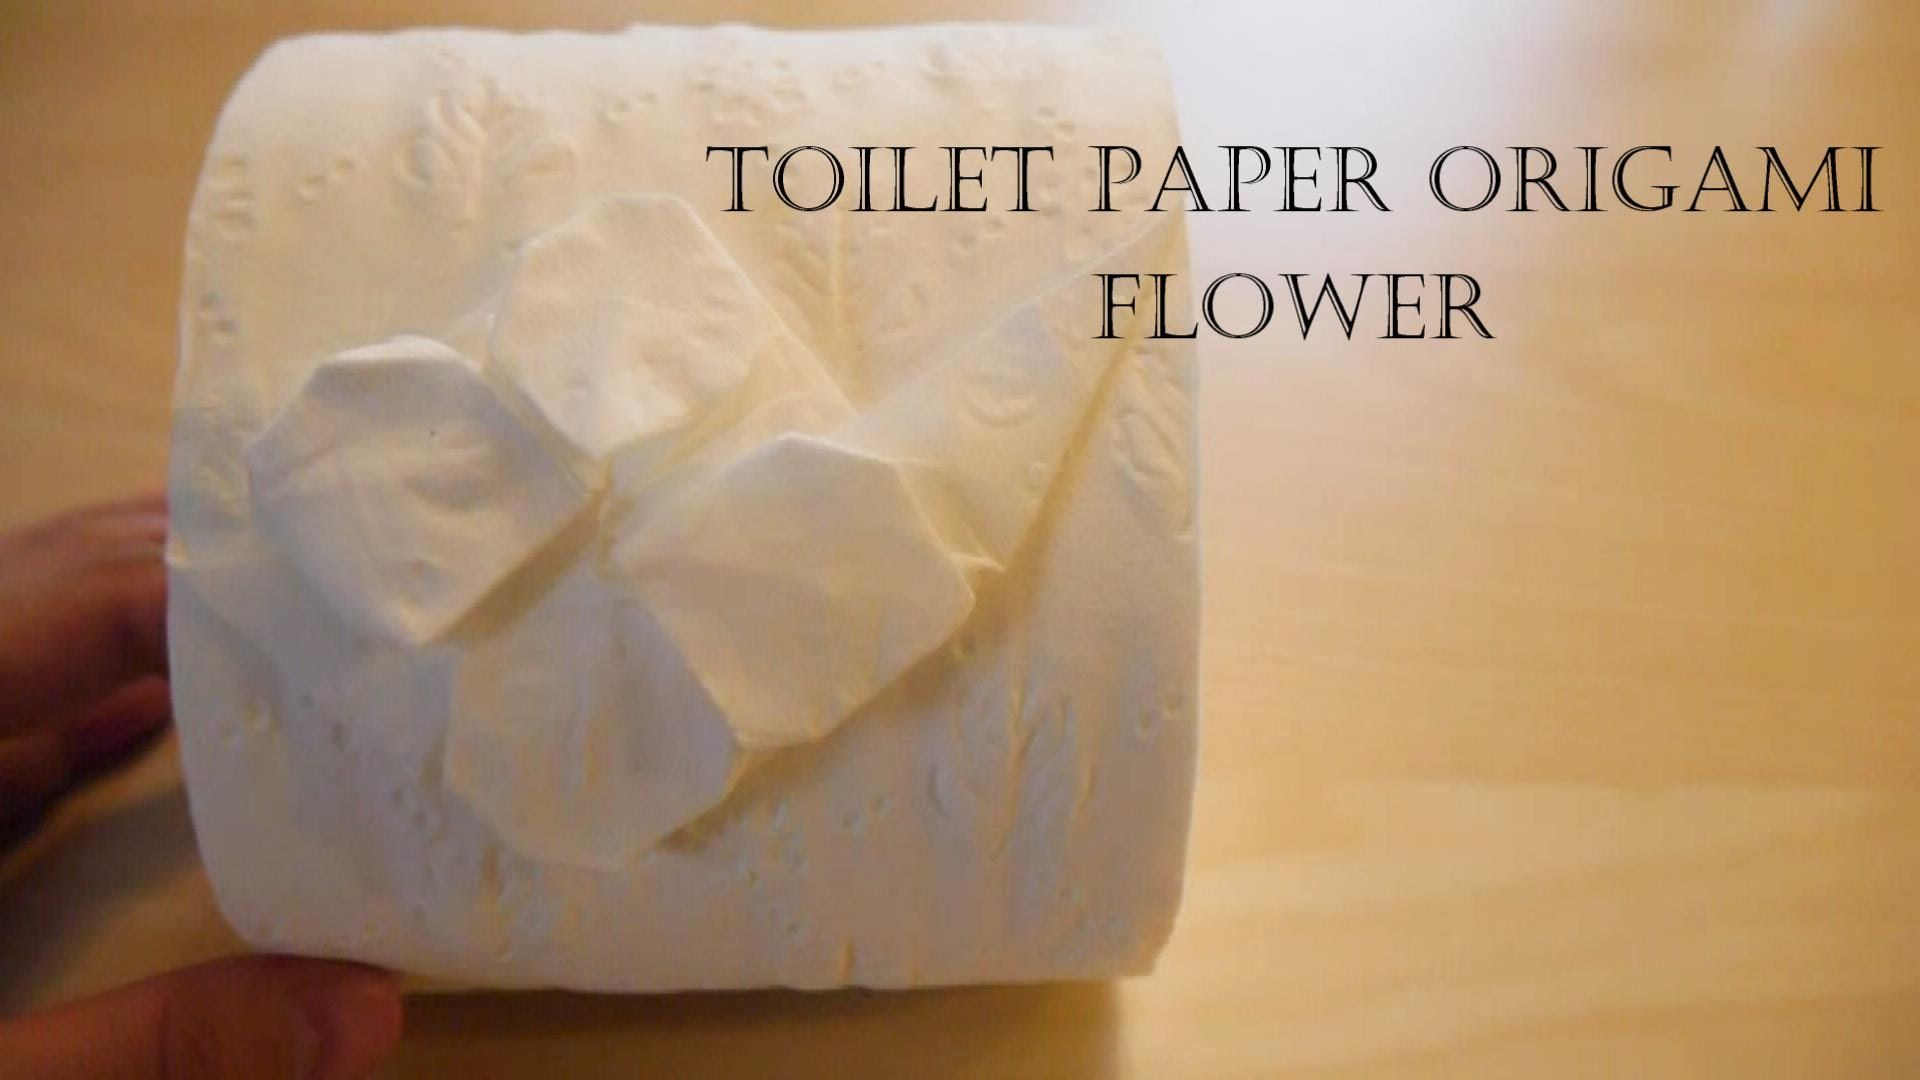 How to make toilet paper origami flower origami wc papr guriga how to make toilet paper origami flower origami wc papr guriga pinterest adornar y toallas mightylinksfo